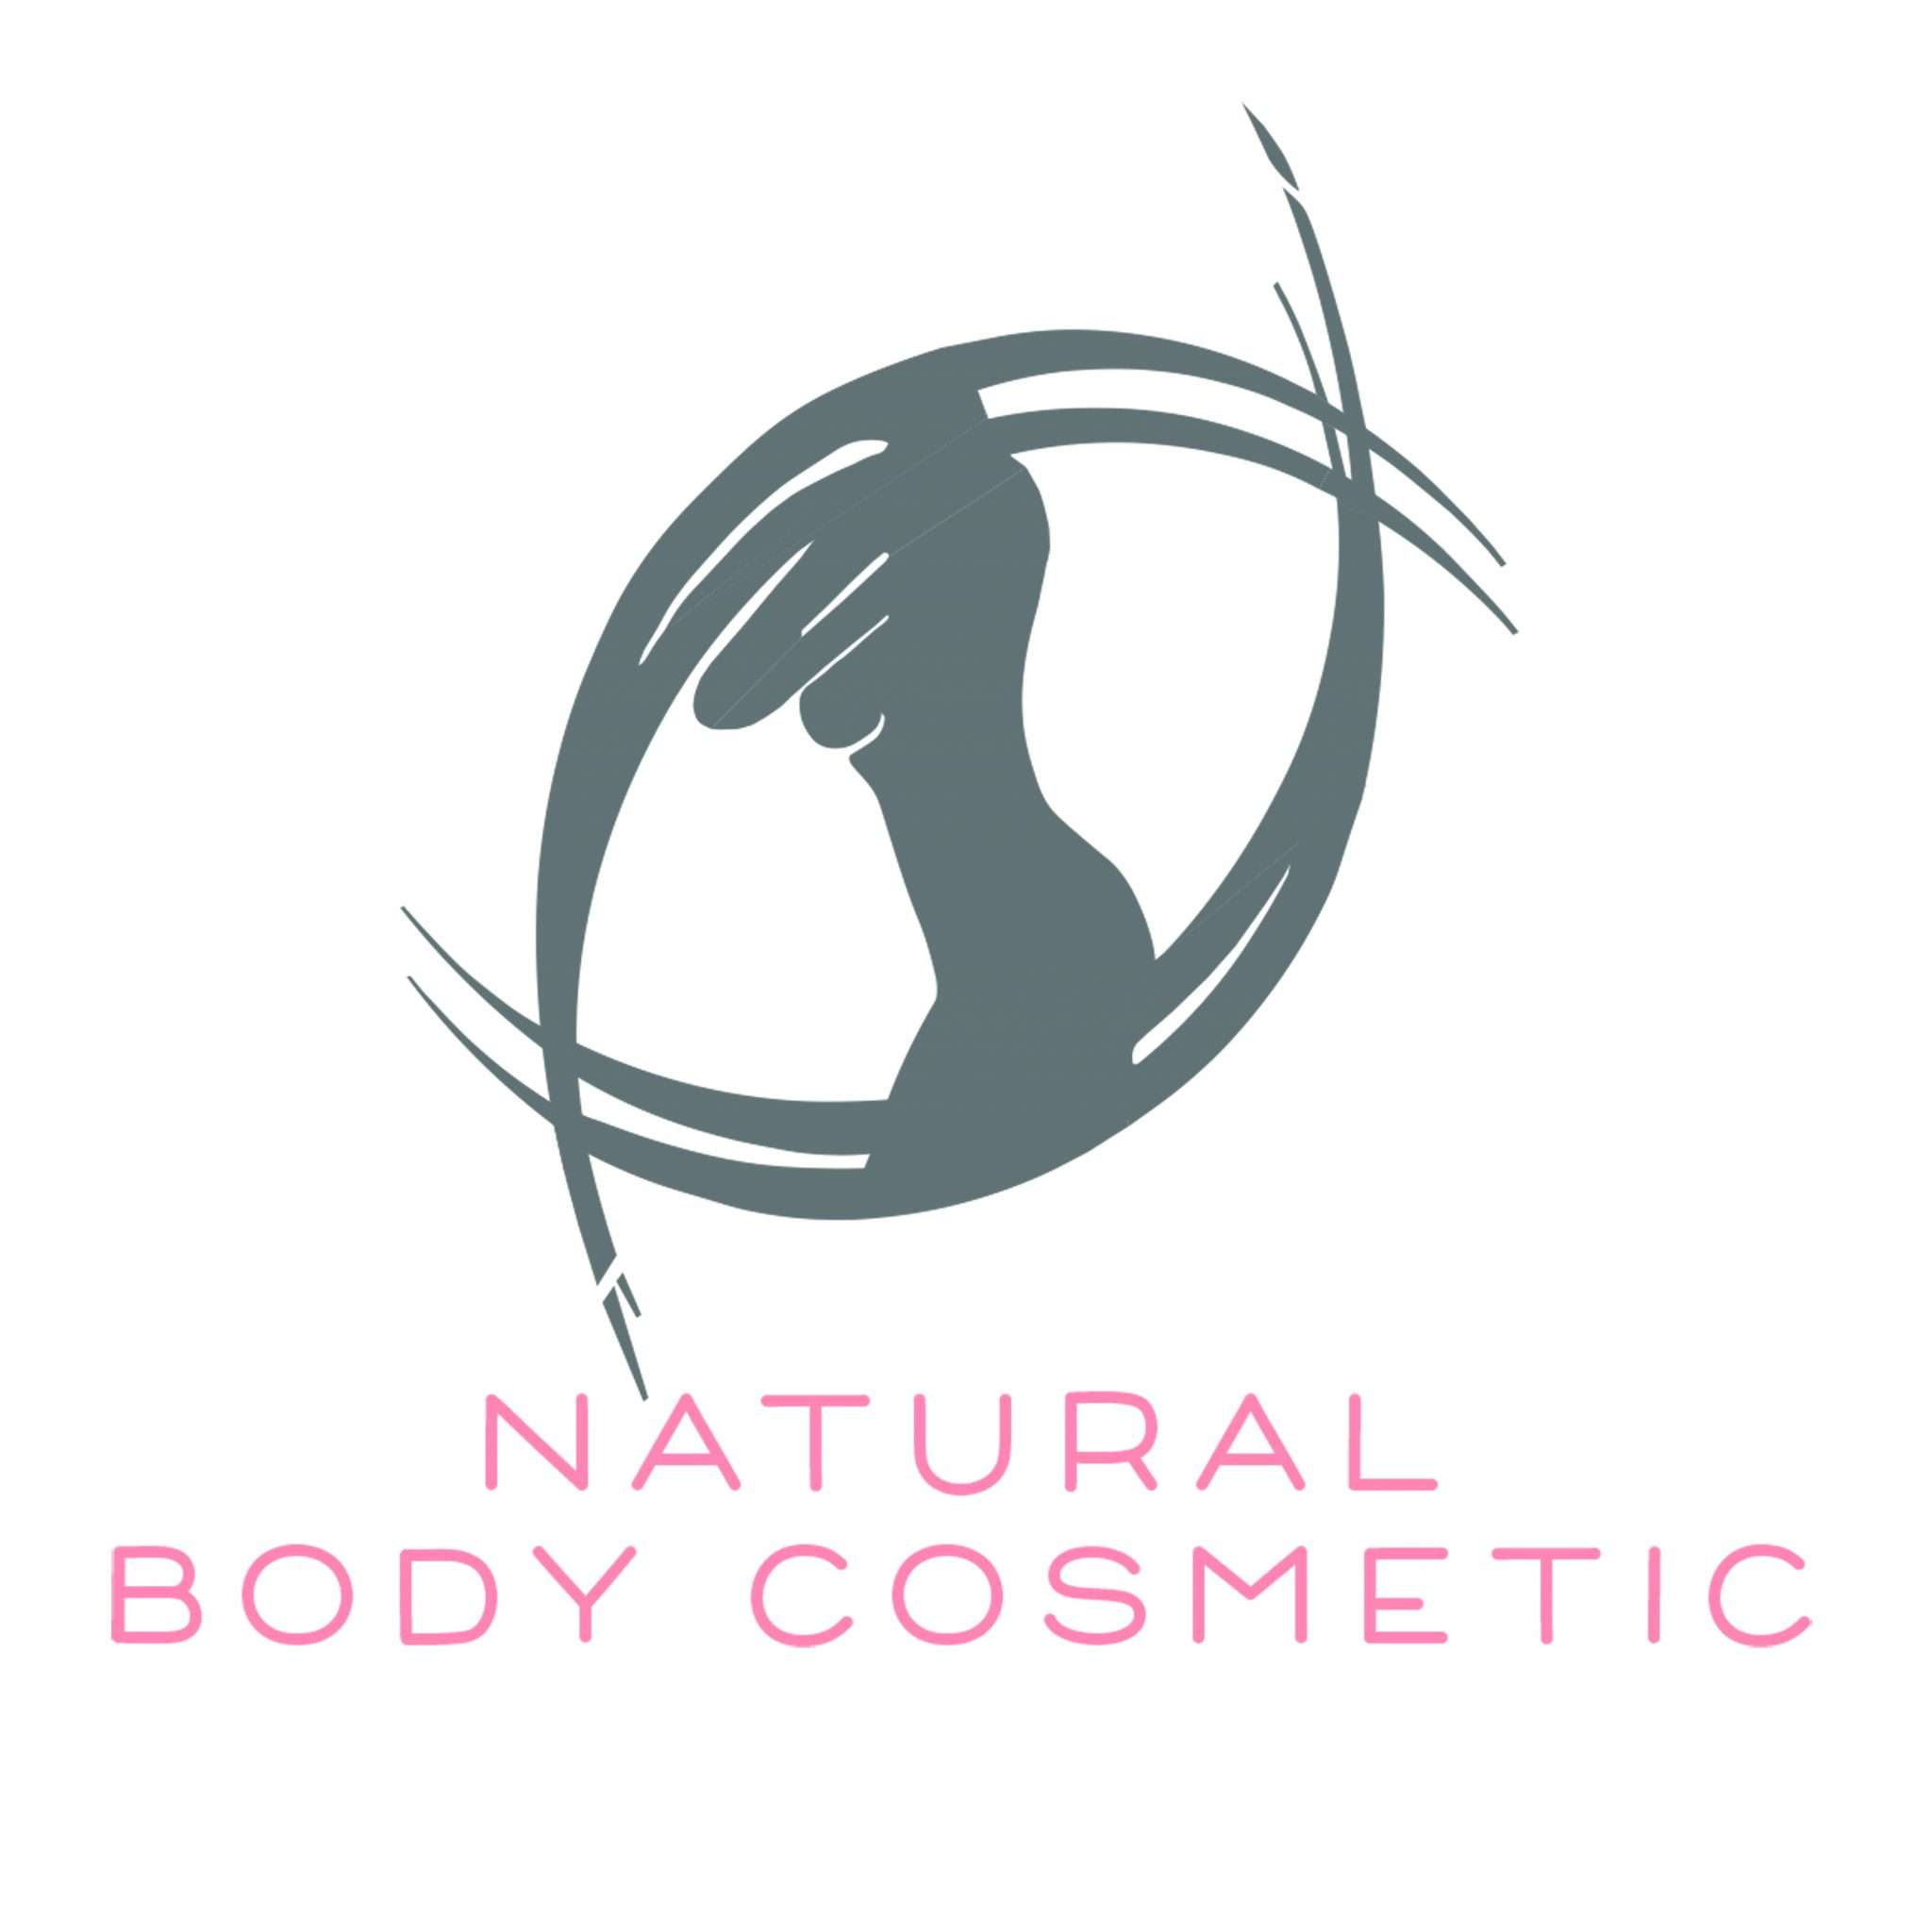 Natural Body Cosmetic